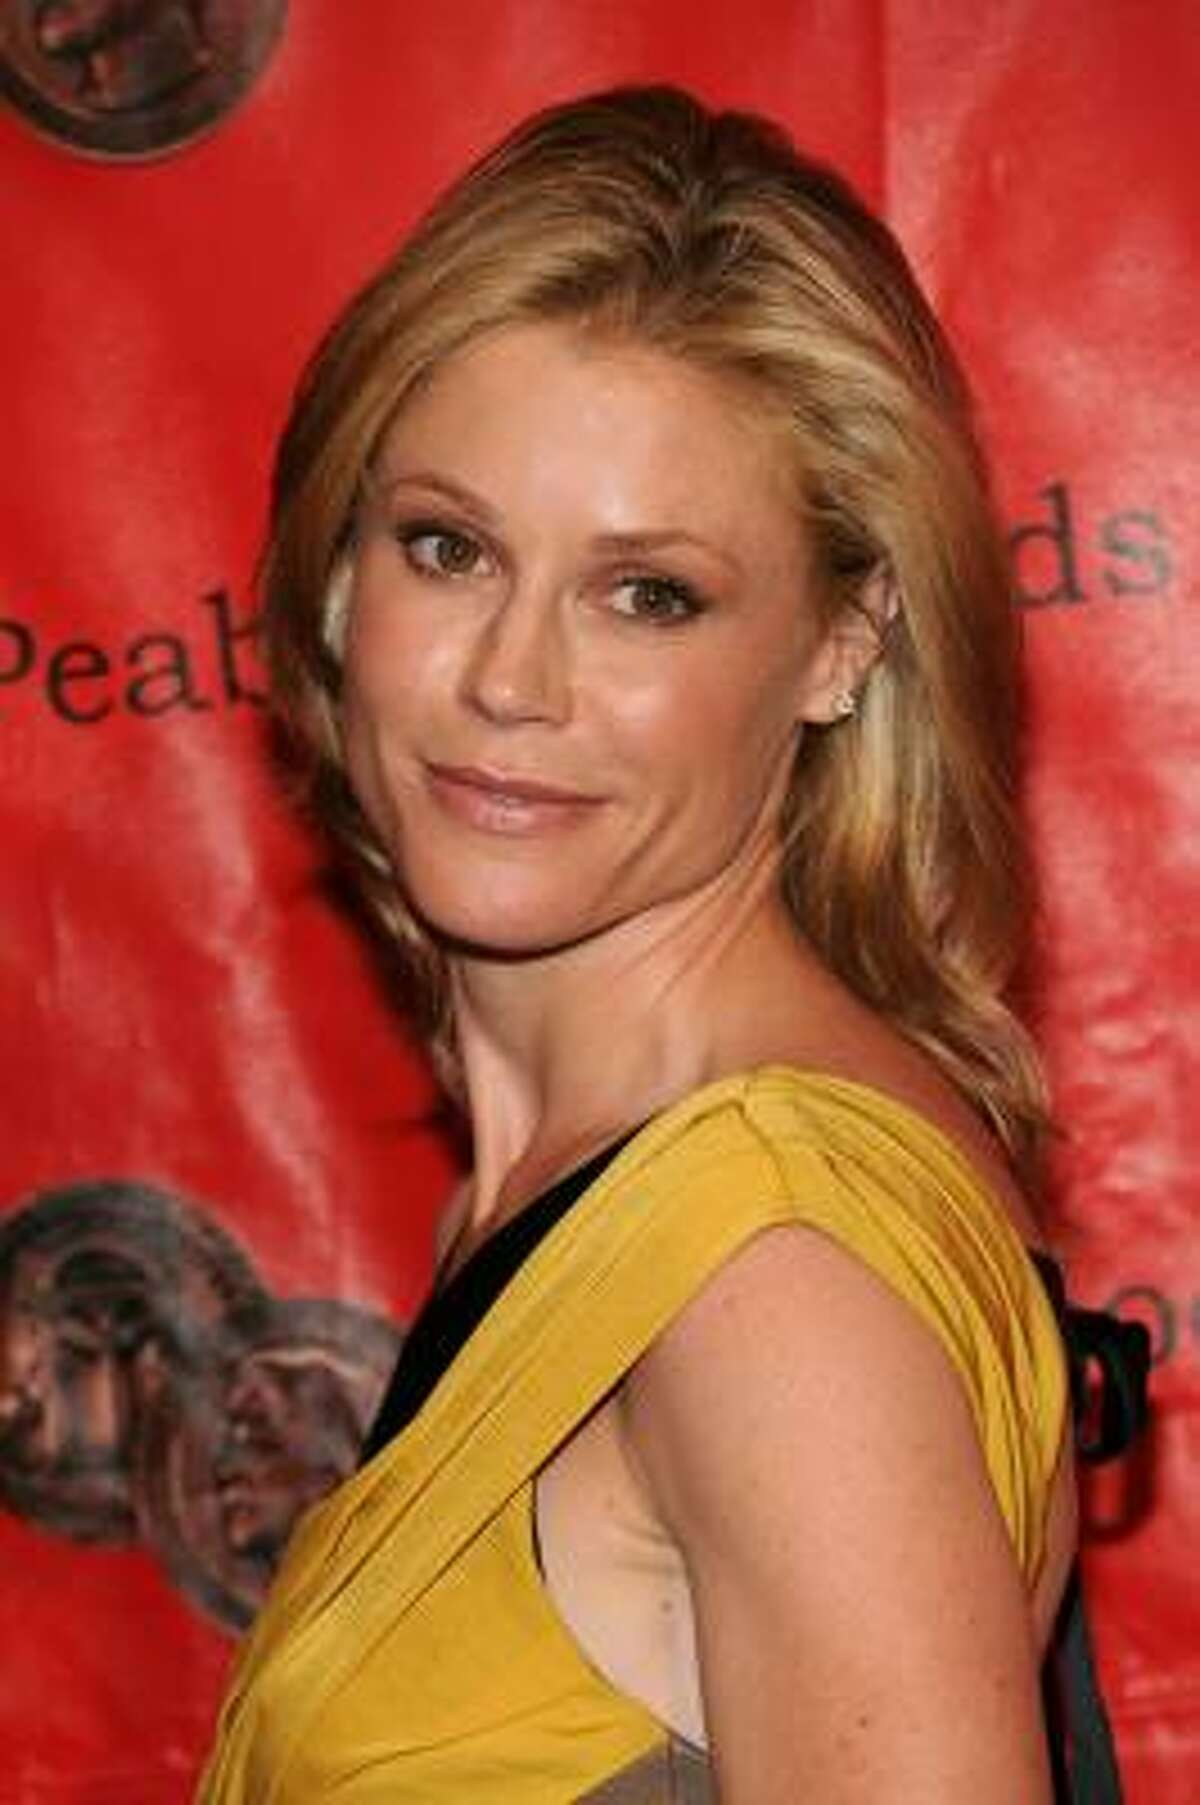 Modern Family's Julie Bowen has twin boys. A photo of her breastfeeding the boys sparked controversy recently.